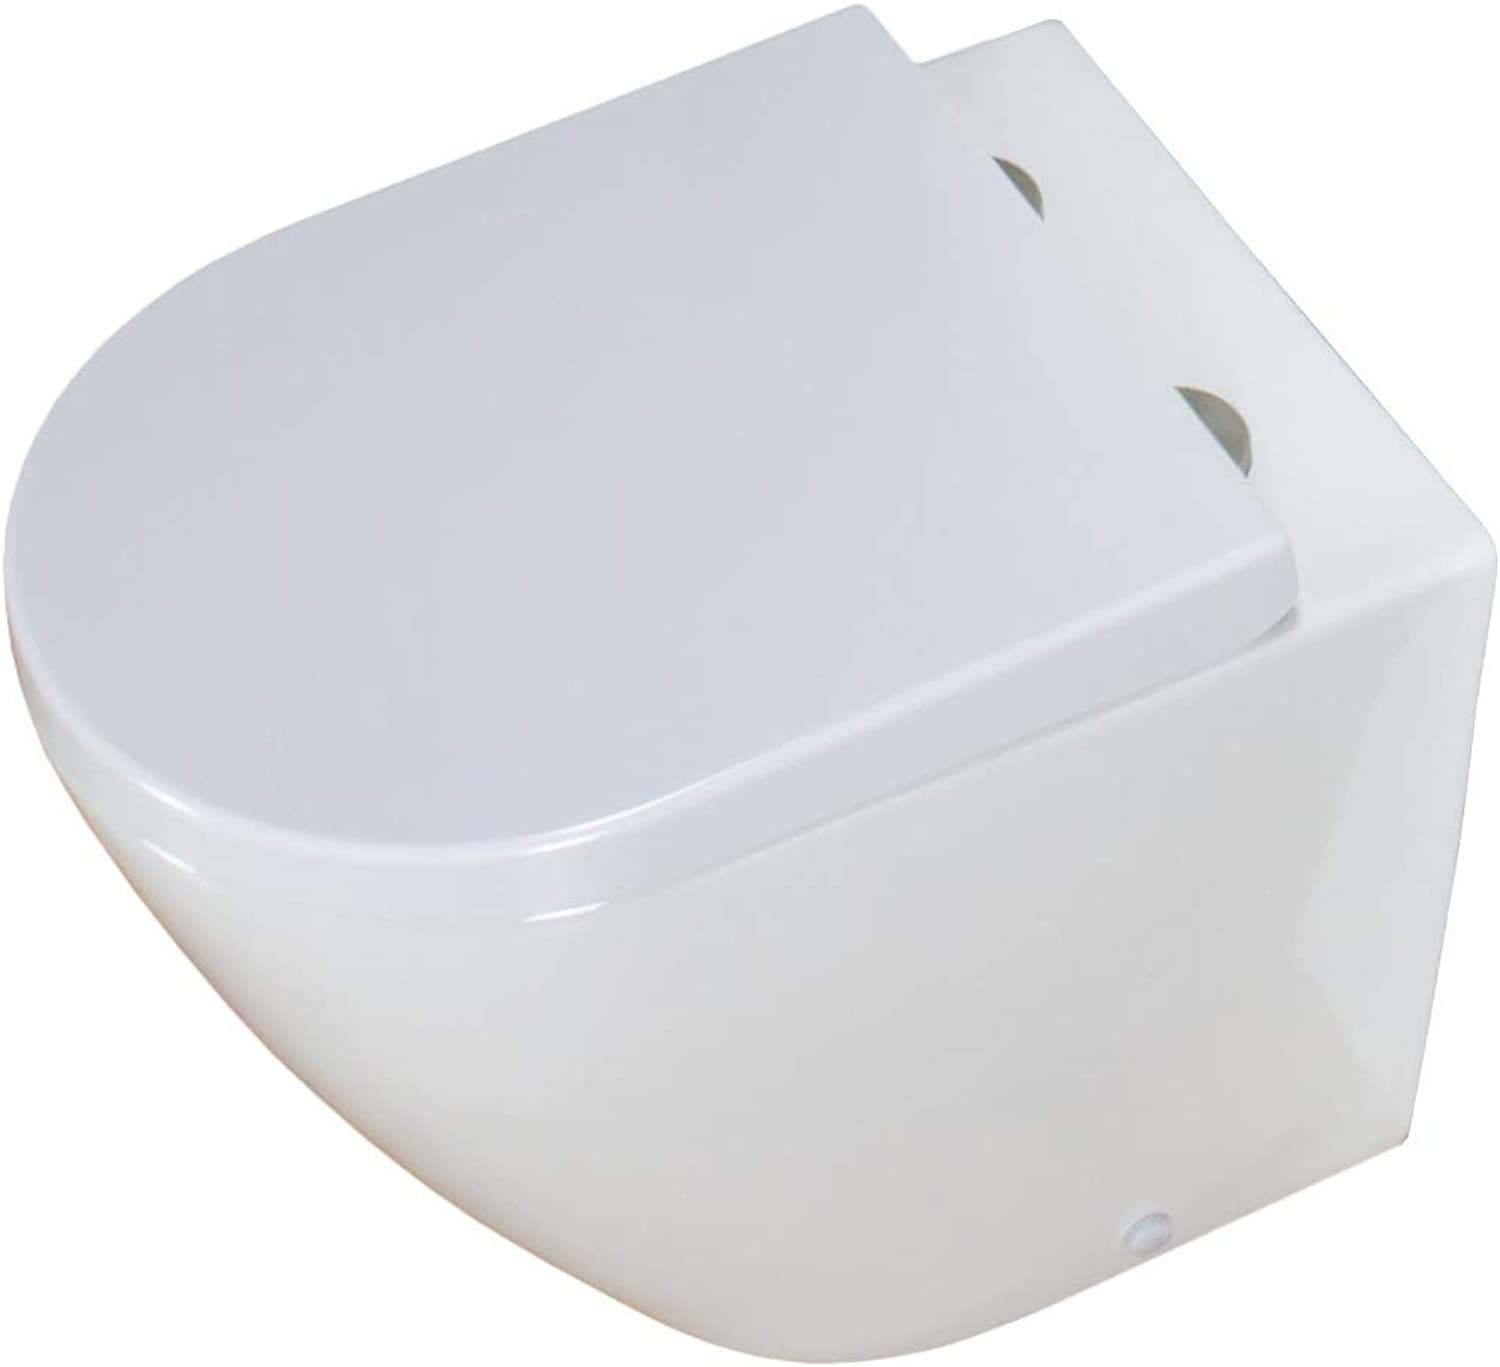 KLARA Toilet WC Back To Wall Concealed Cistern Tank Housing Cloakroom White Soft Close Seat (365 mm W x 530 mm D x 410 mm H)